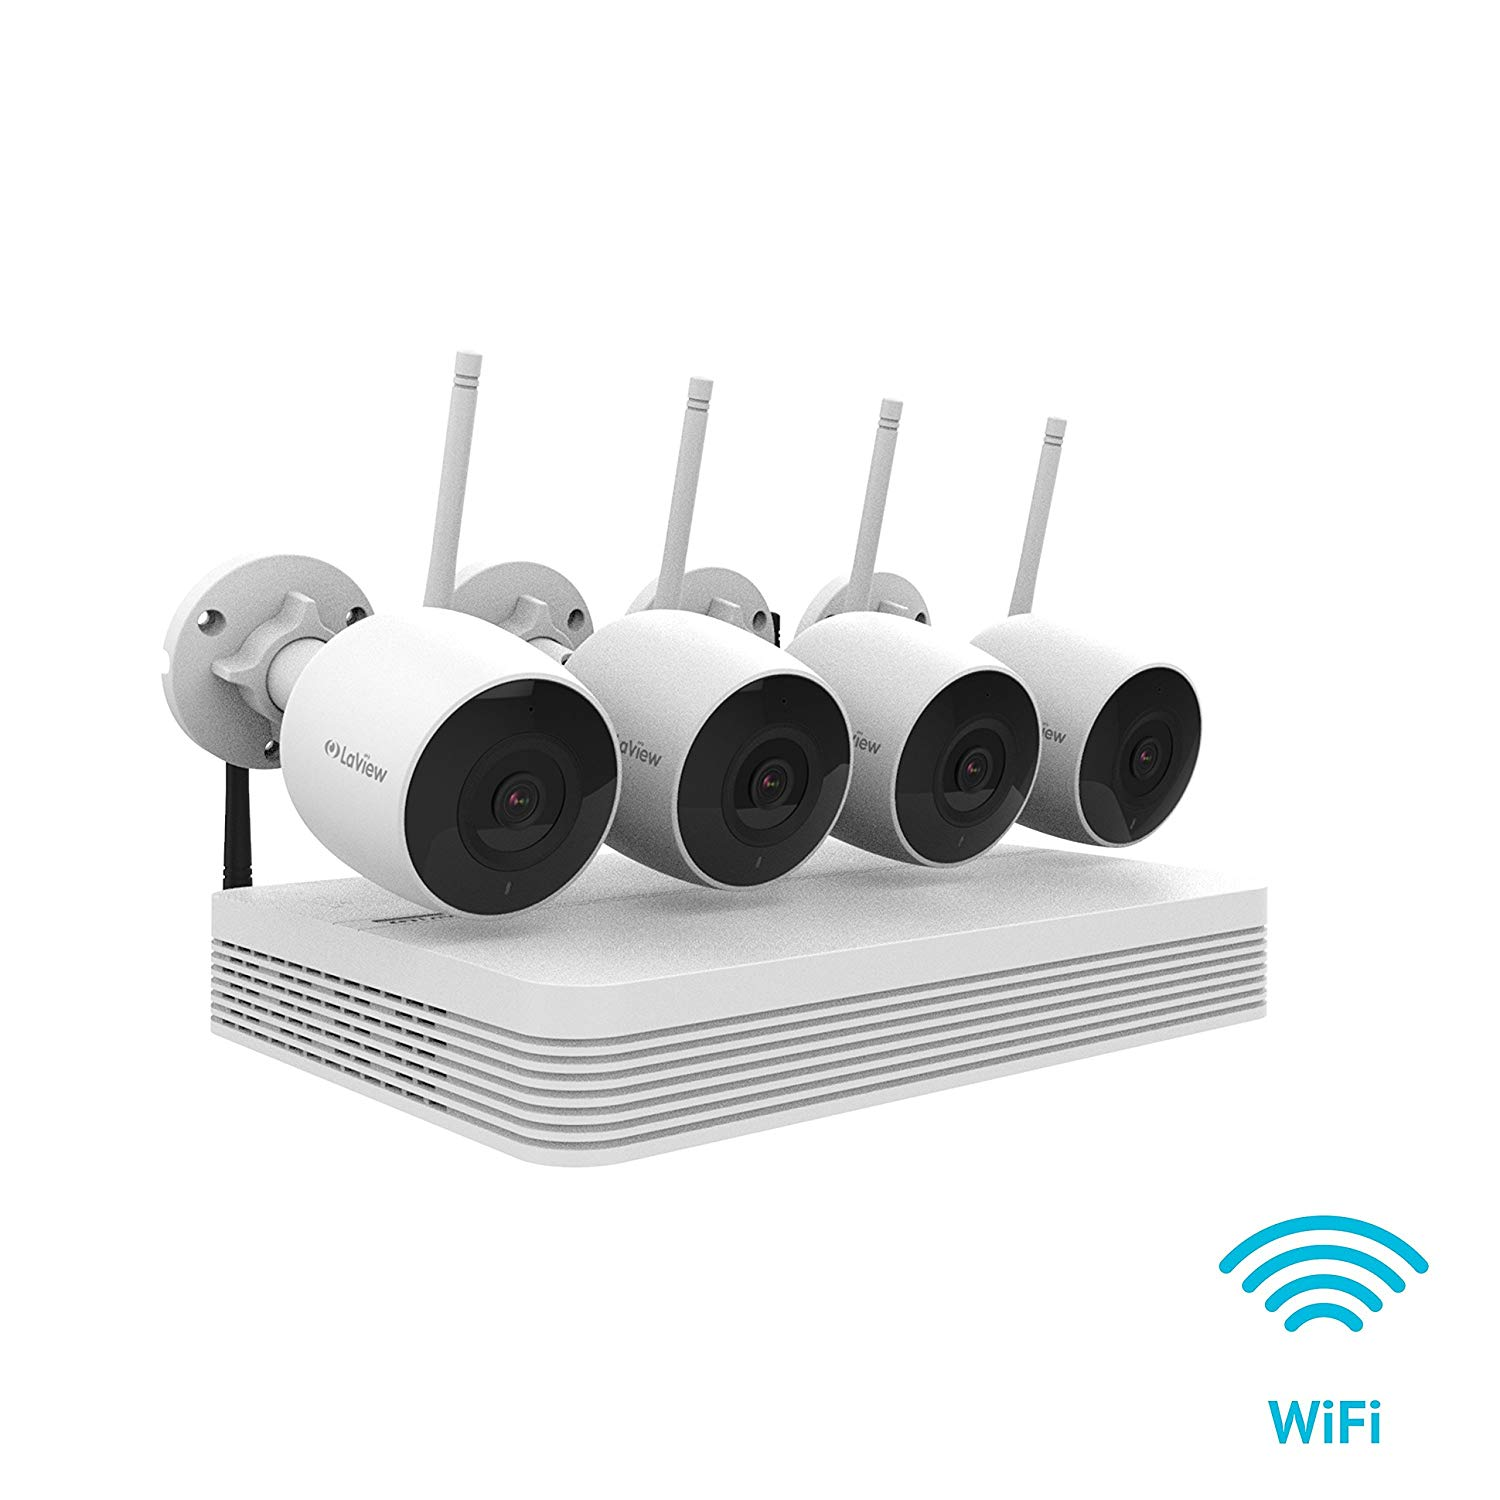 LaView Wireless 4 Channel NVR Security System W/ 1TB & (4) WiFi bullet 1080P Surveillance Cameras